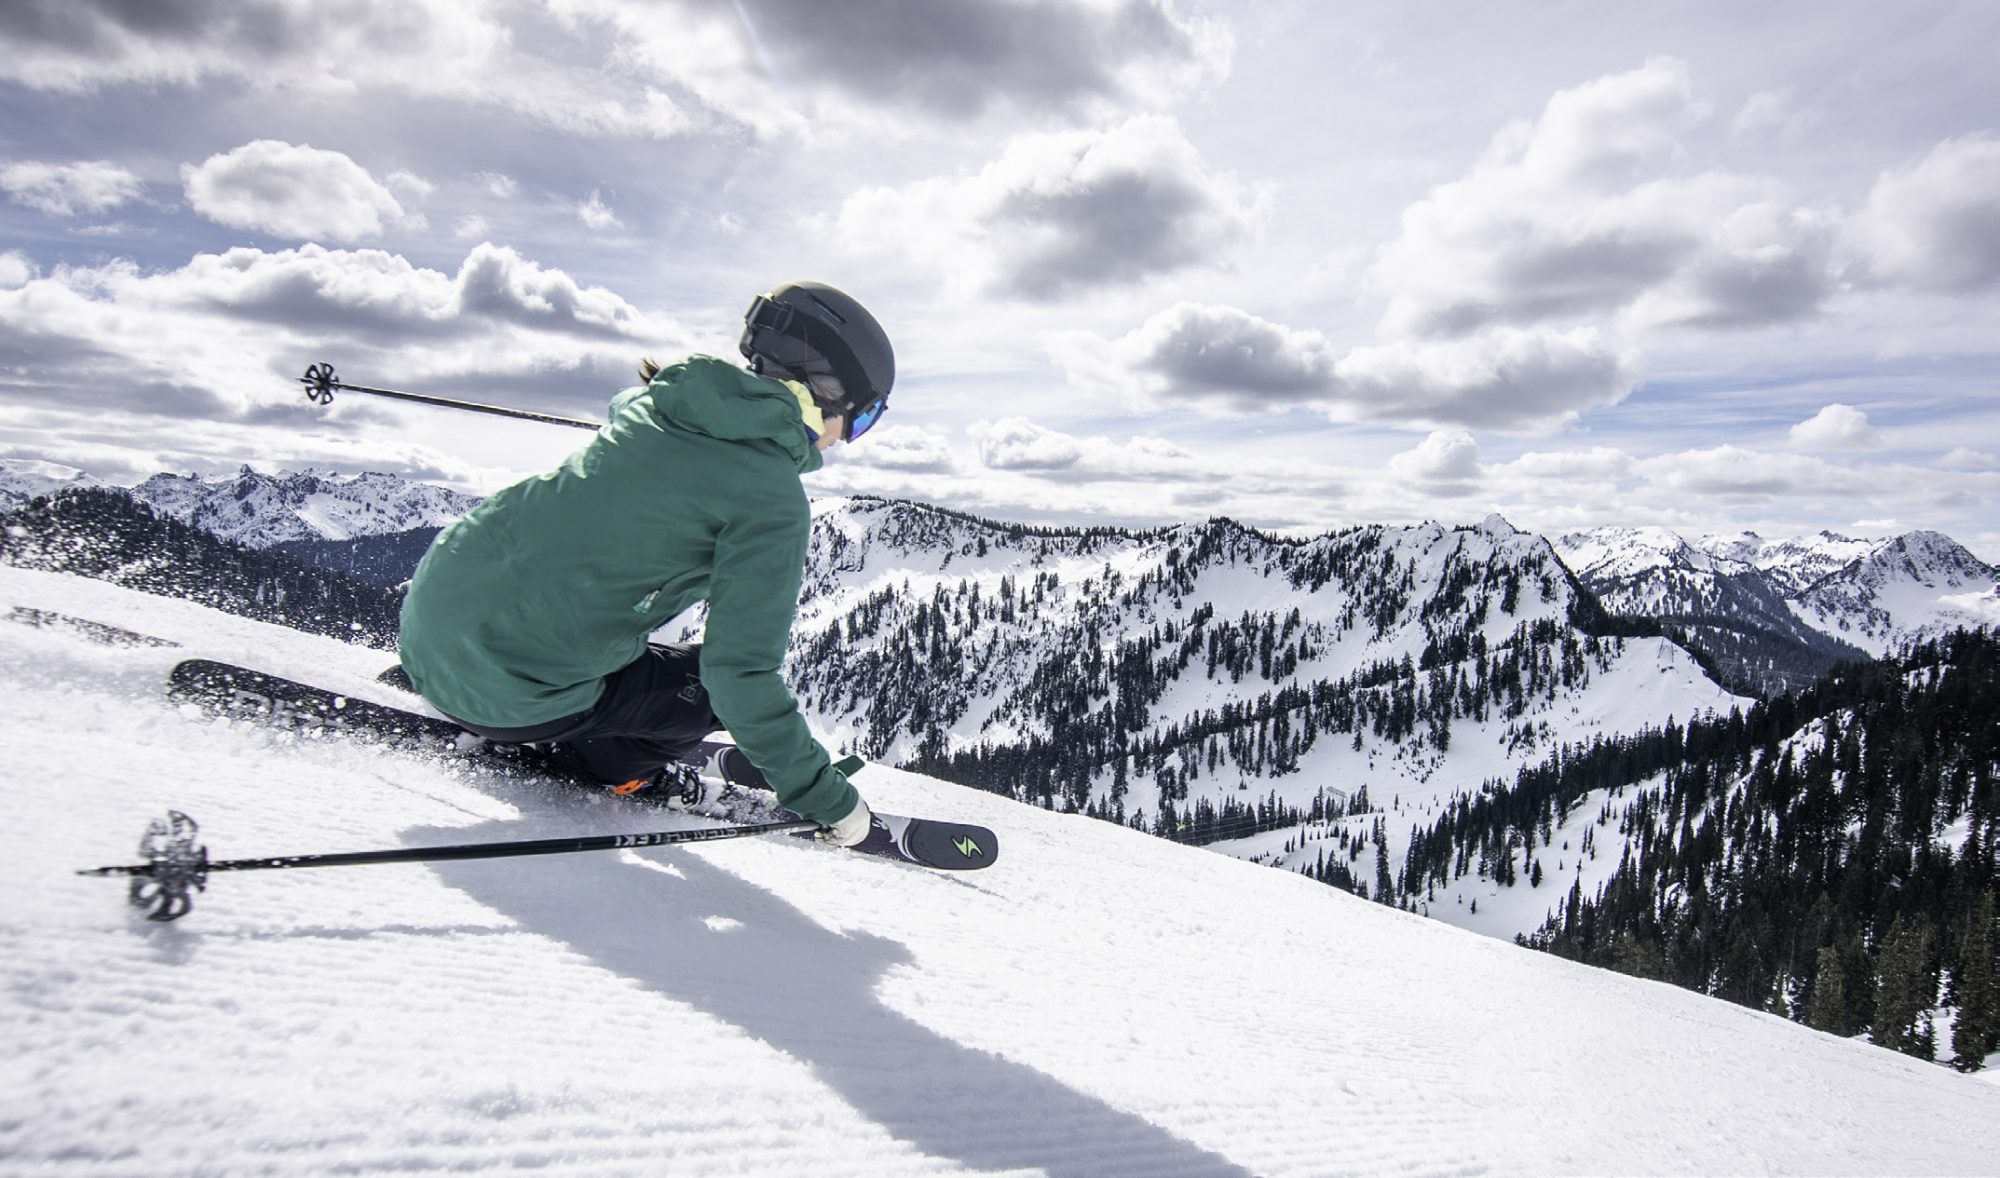 Stunning slopes and scenery at Stevens Pass